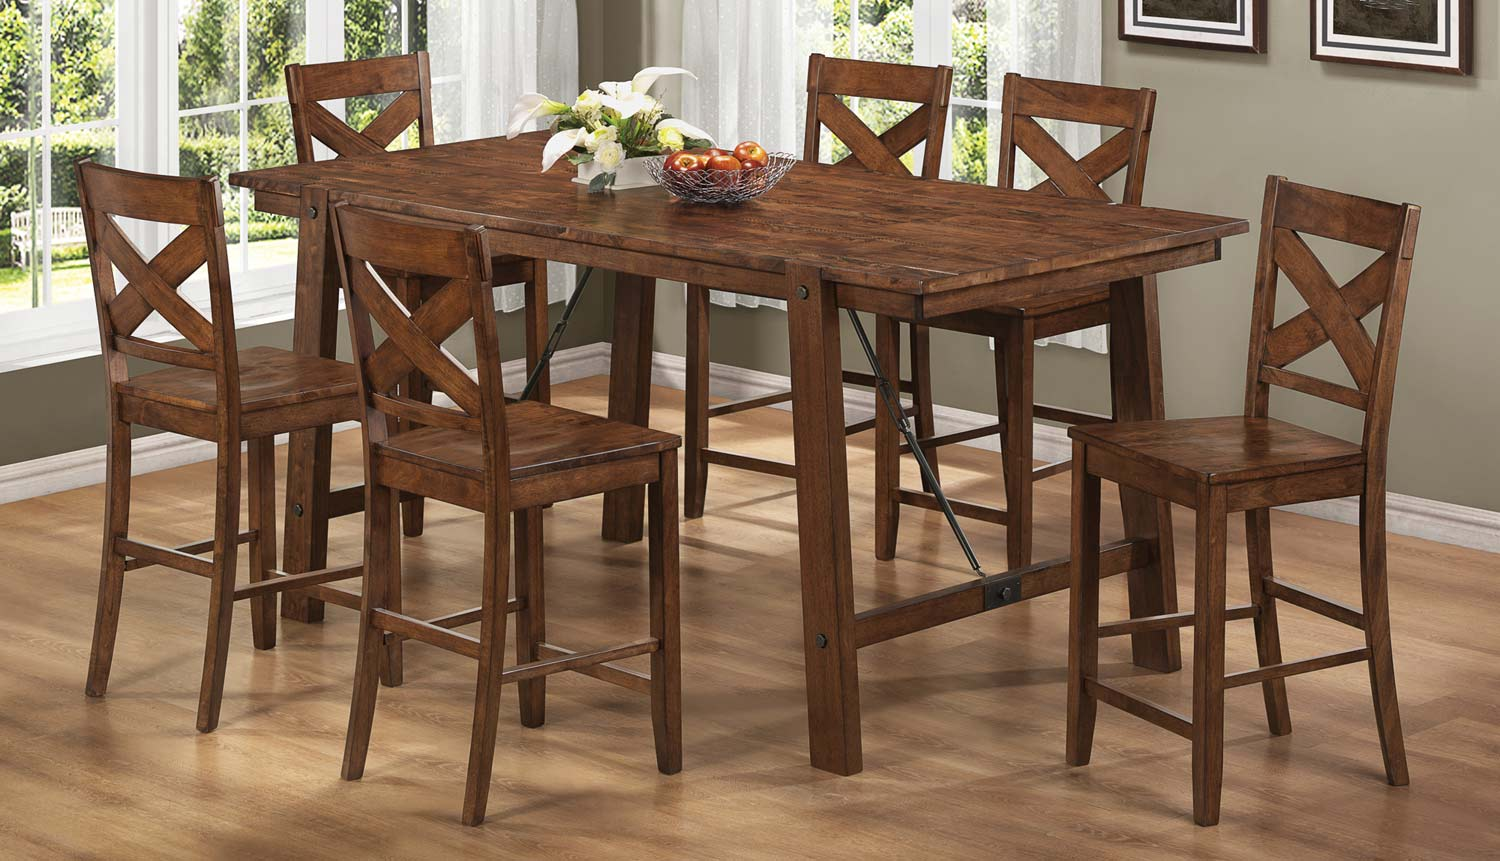 Coaster Lawson Counter Height Dining Set - Rustic Oak